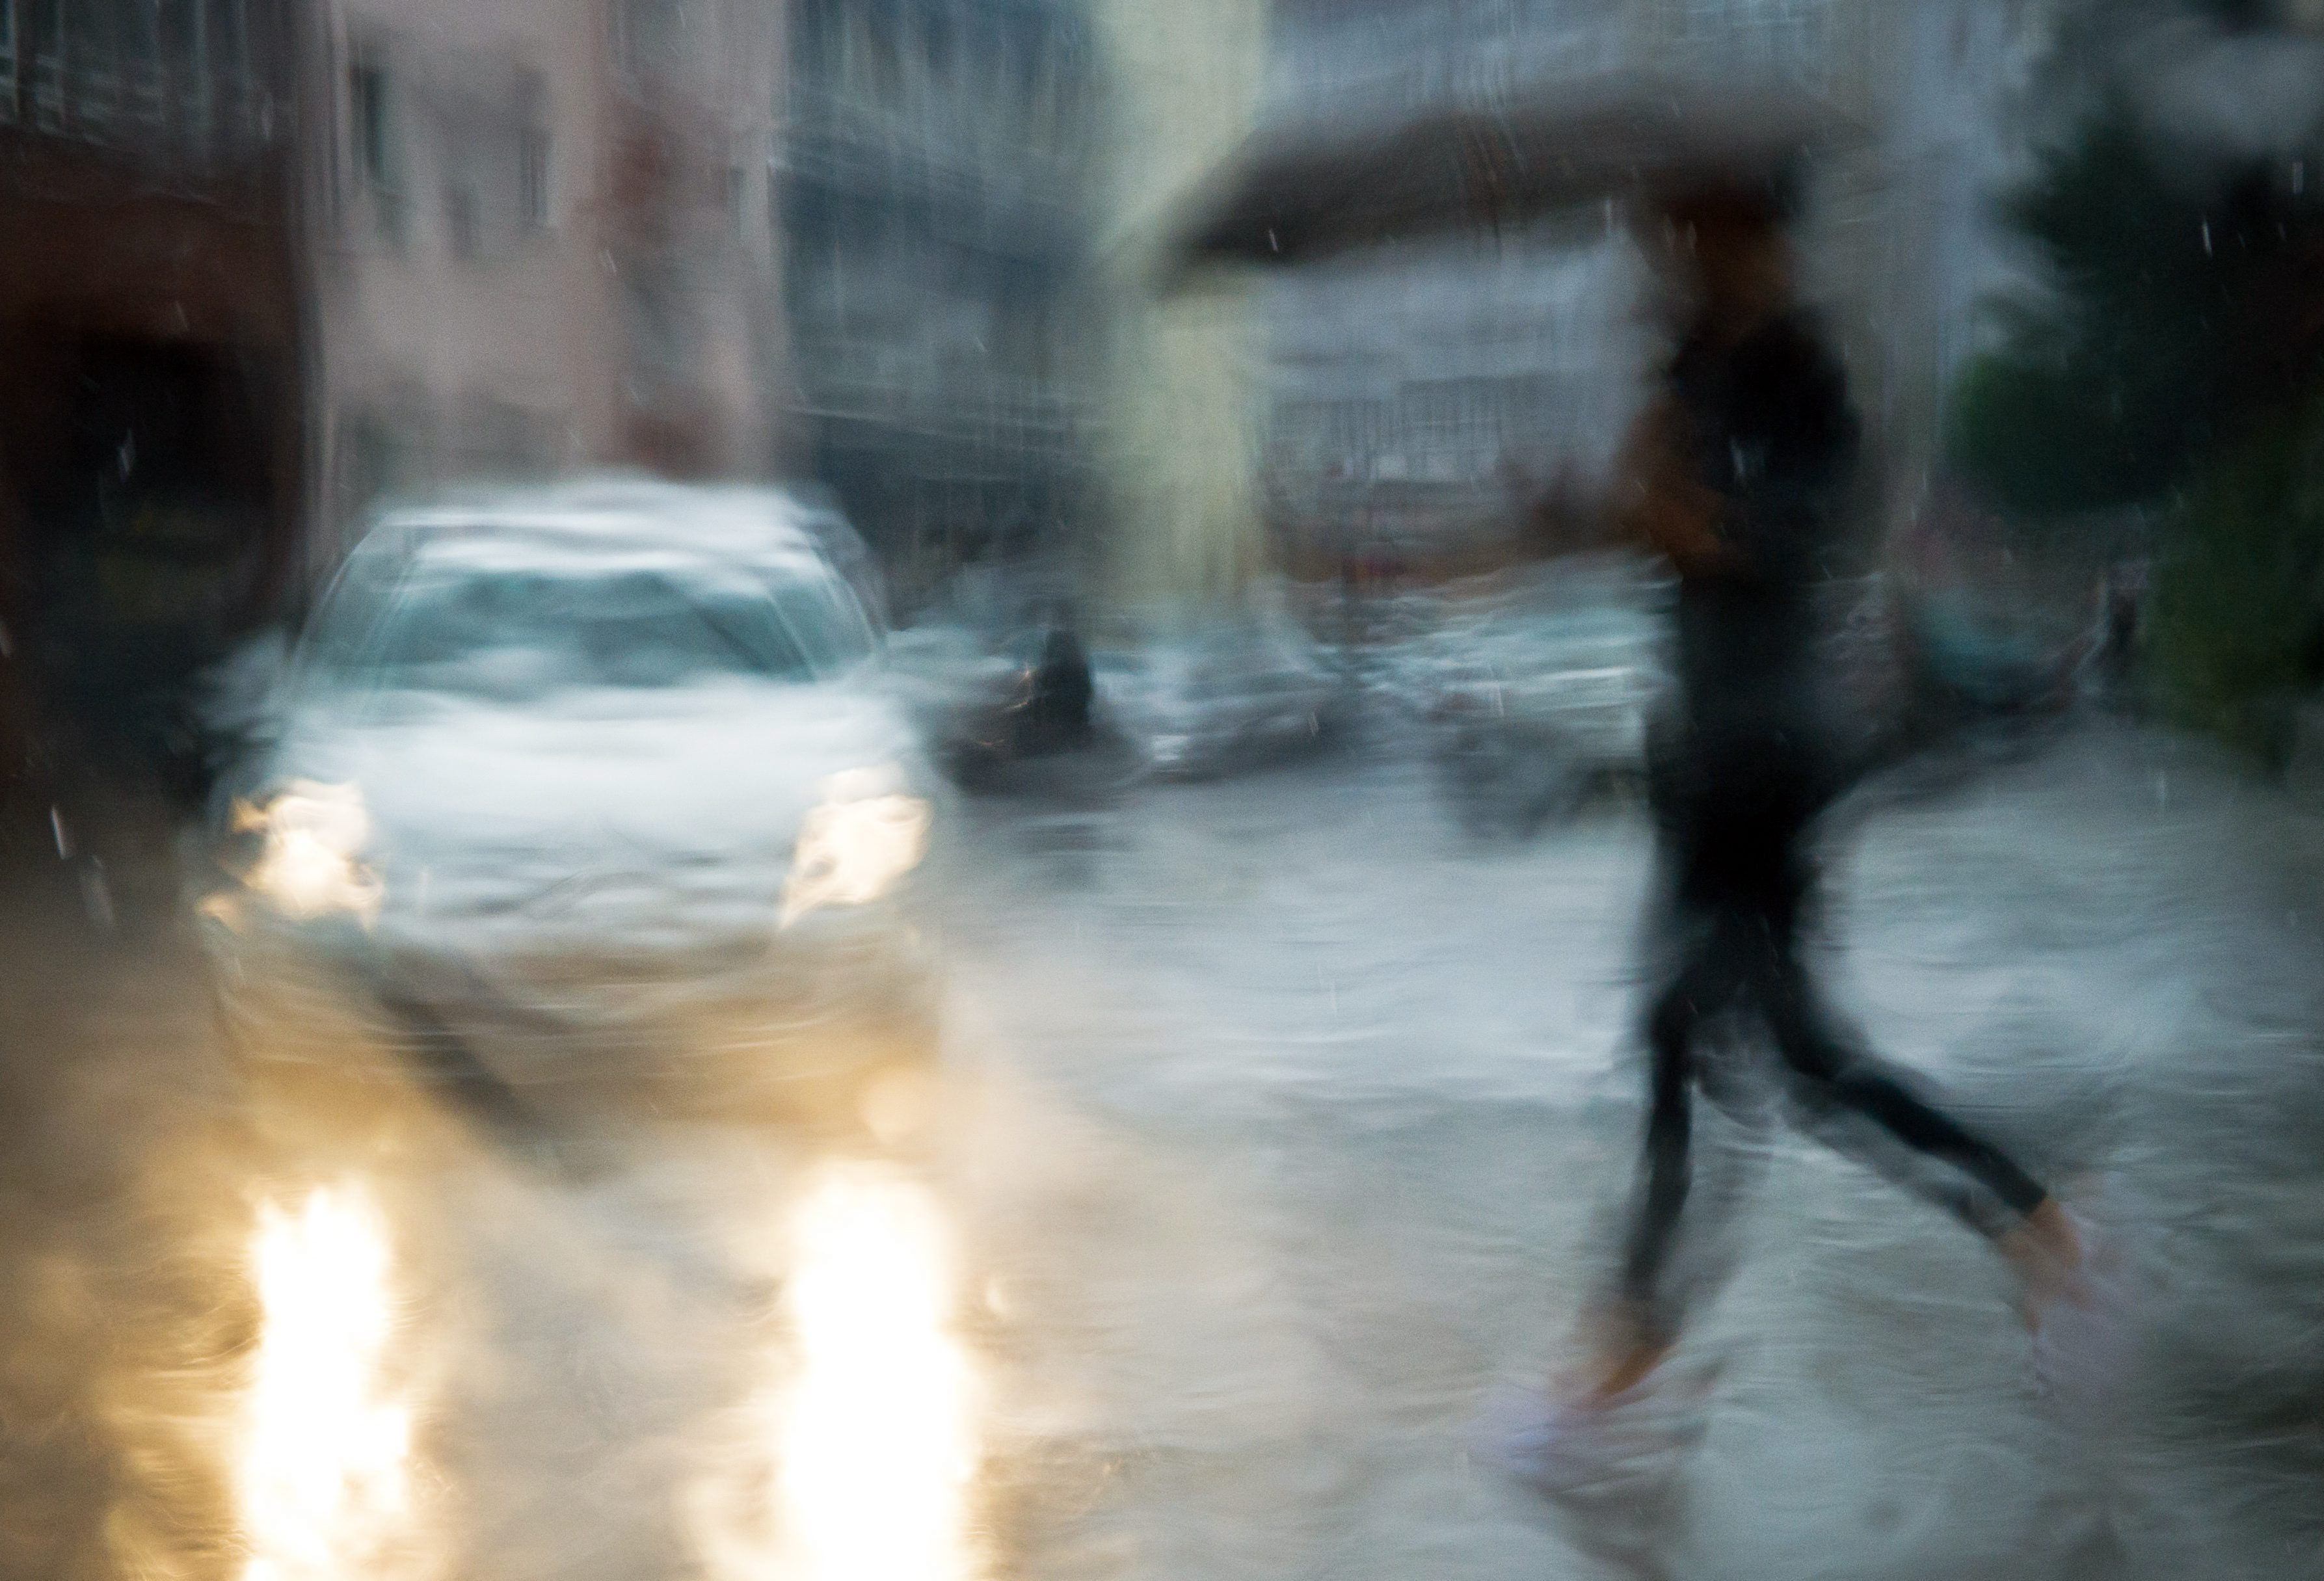 Aug. 4, 2014. A woman with an umbrella crosses a street in Hanover, Germany, photographed through the rain-wet window of a car.